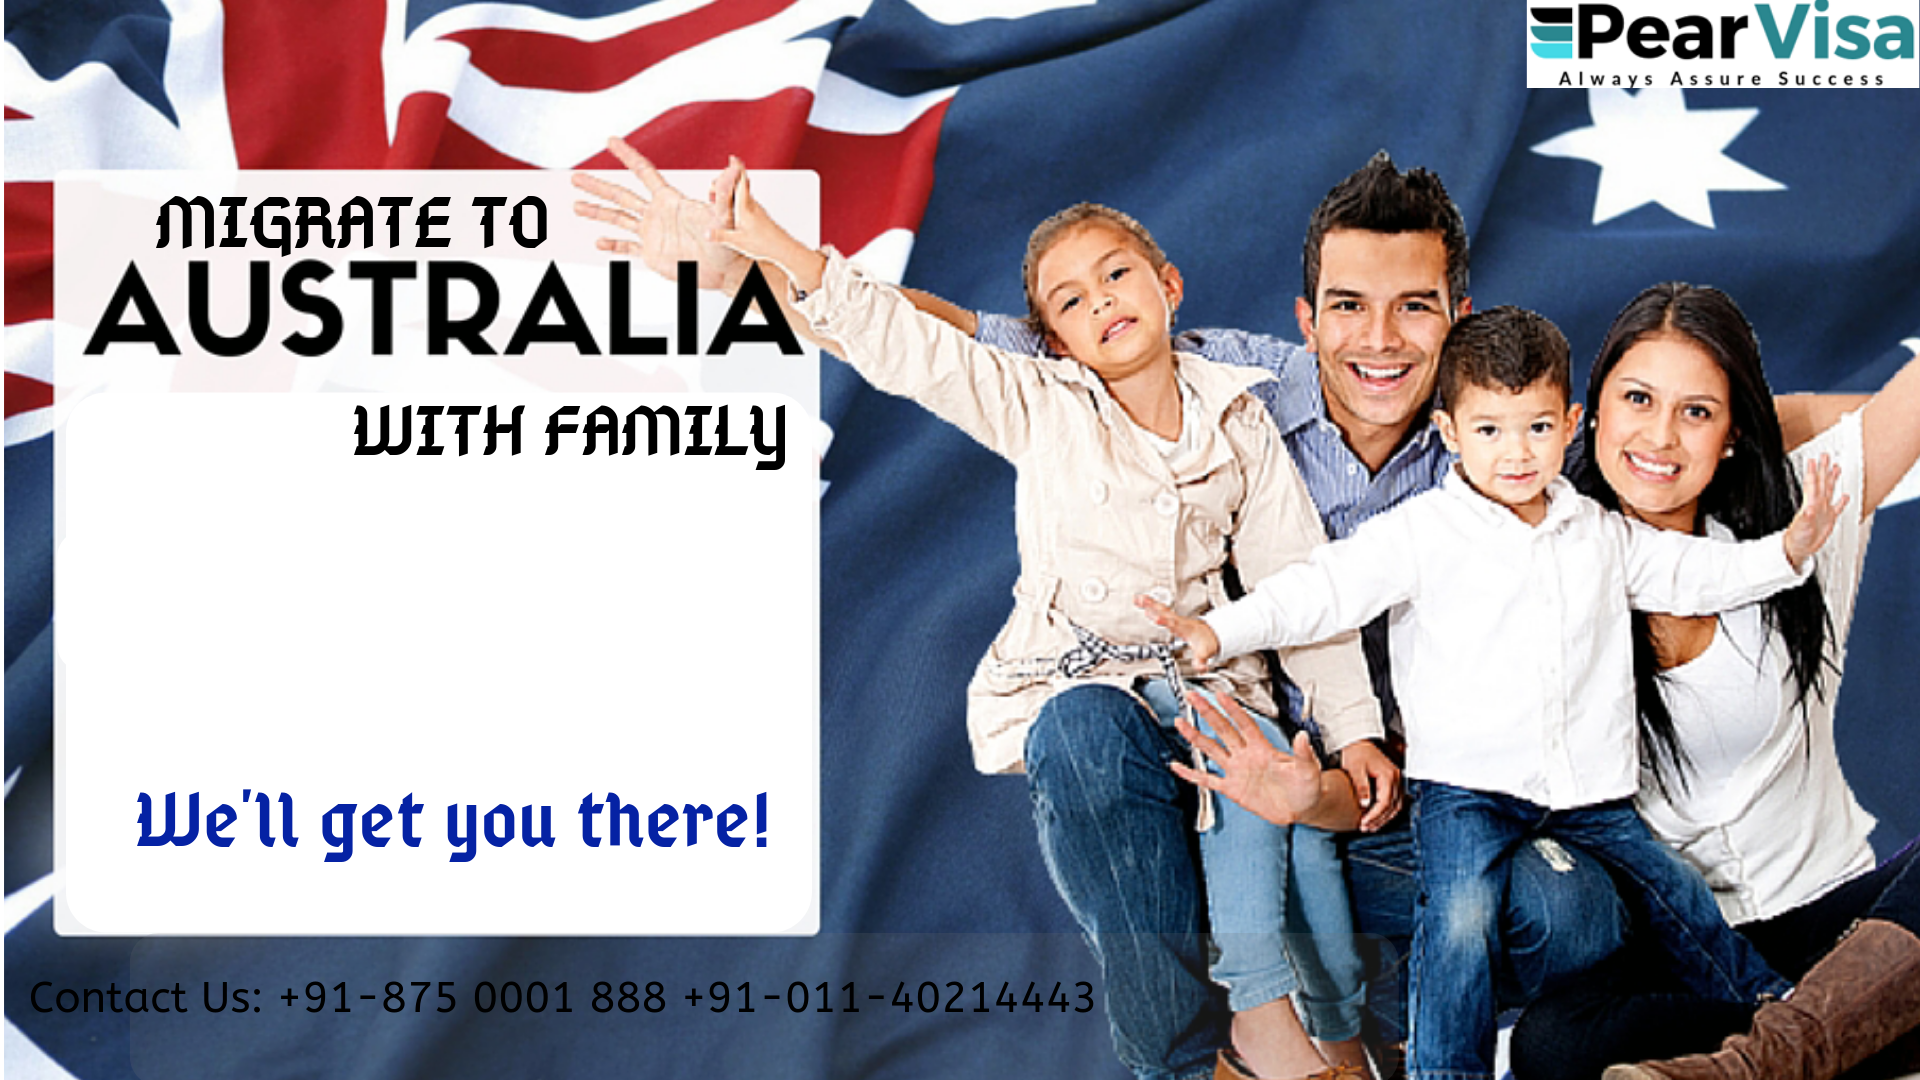 Book Your Appointment For Free Assistance Pearvisa Offers